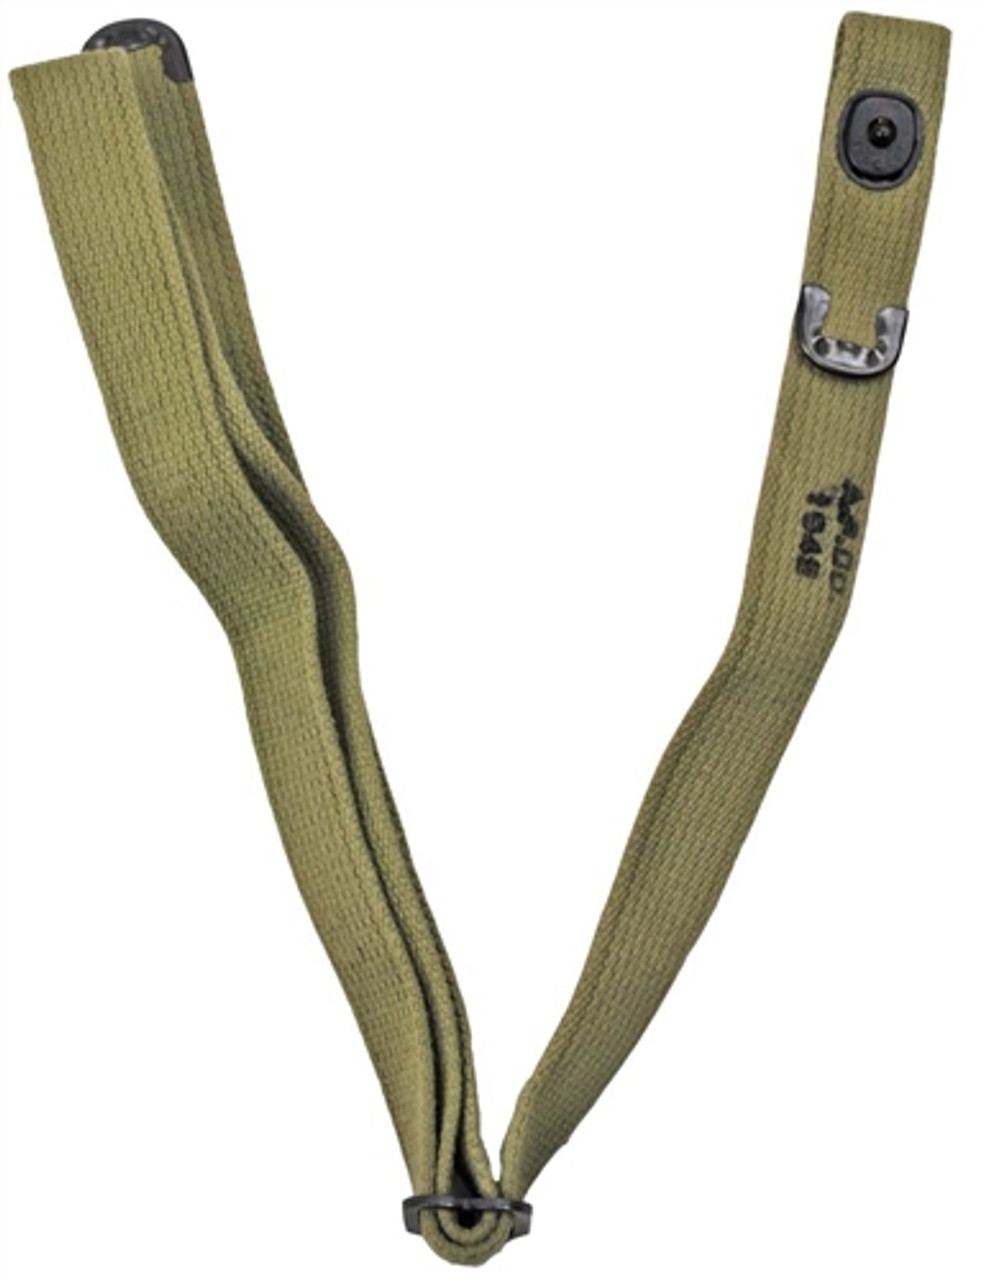 WWII USGI M1 Carbine Sling - One Only from Hessen Antique